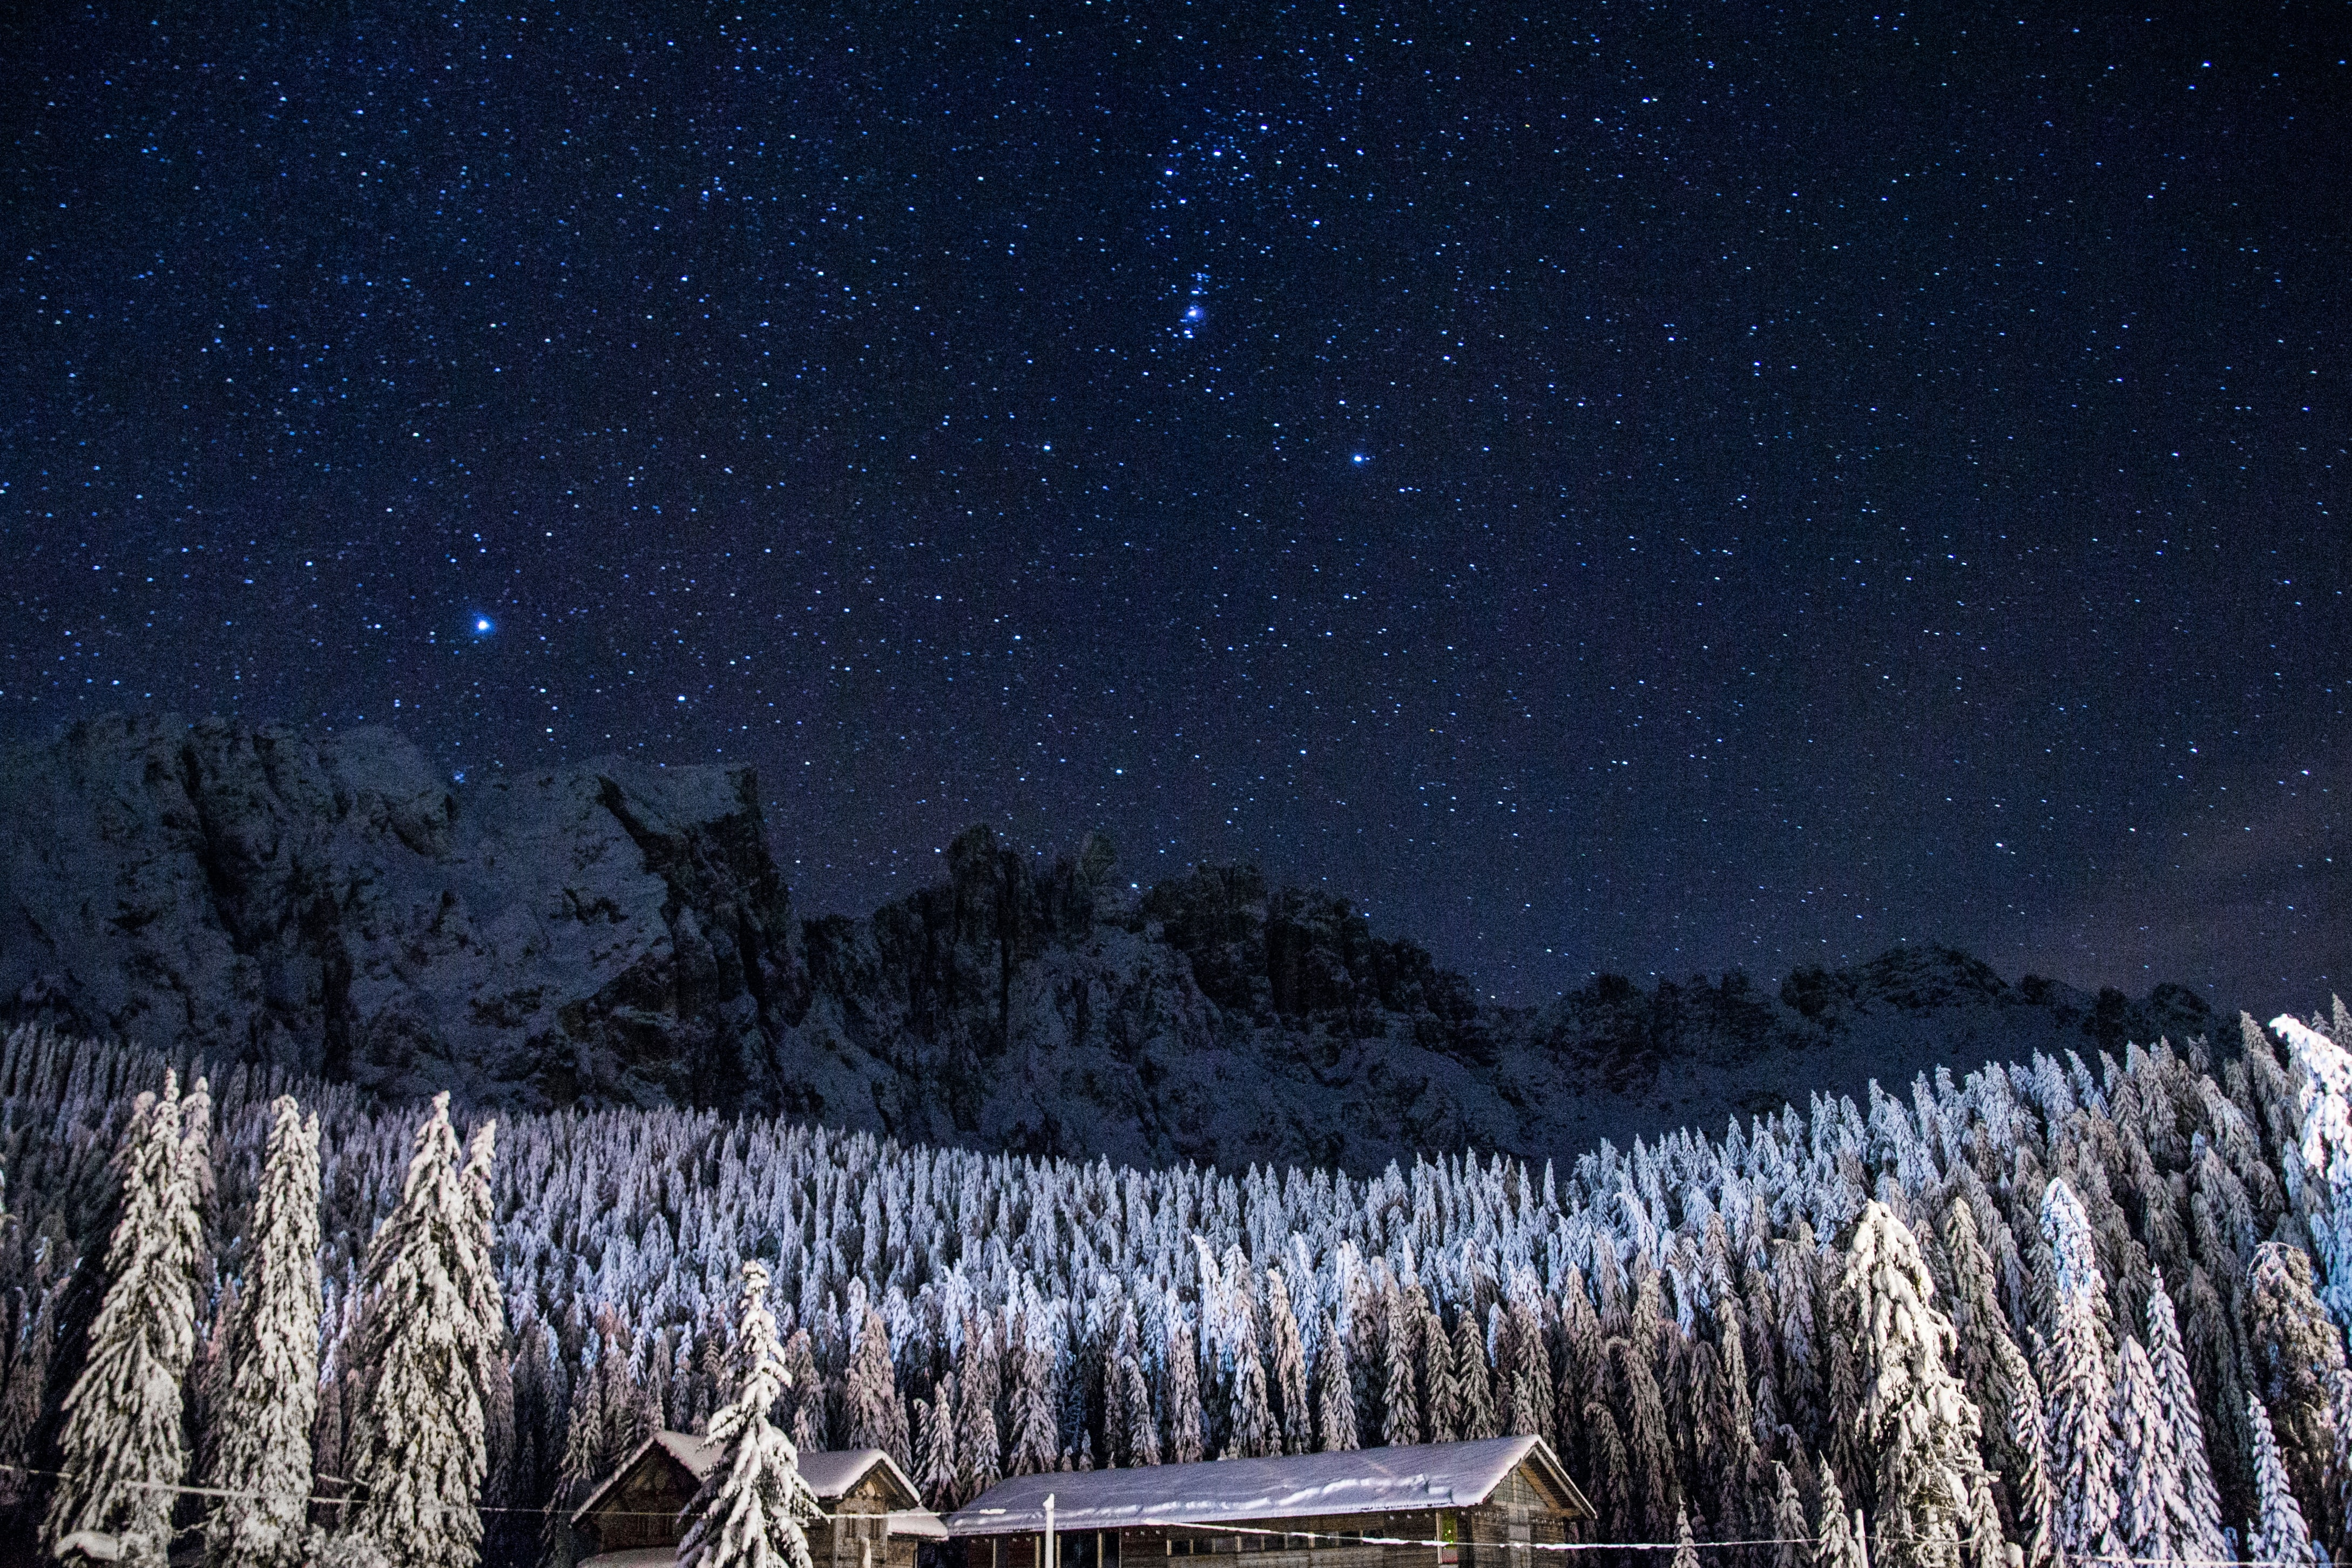 pine trees covered with snow under starry sky